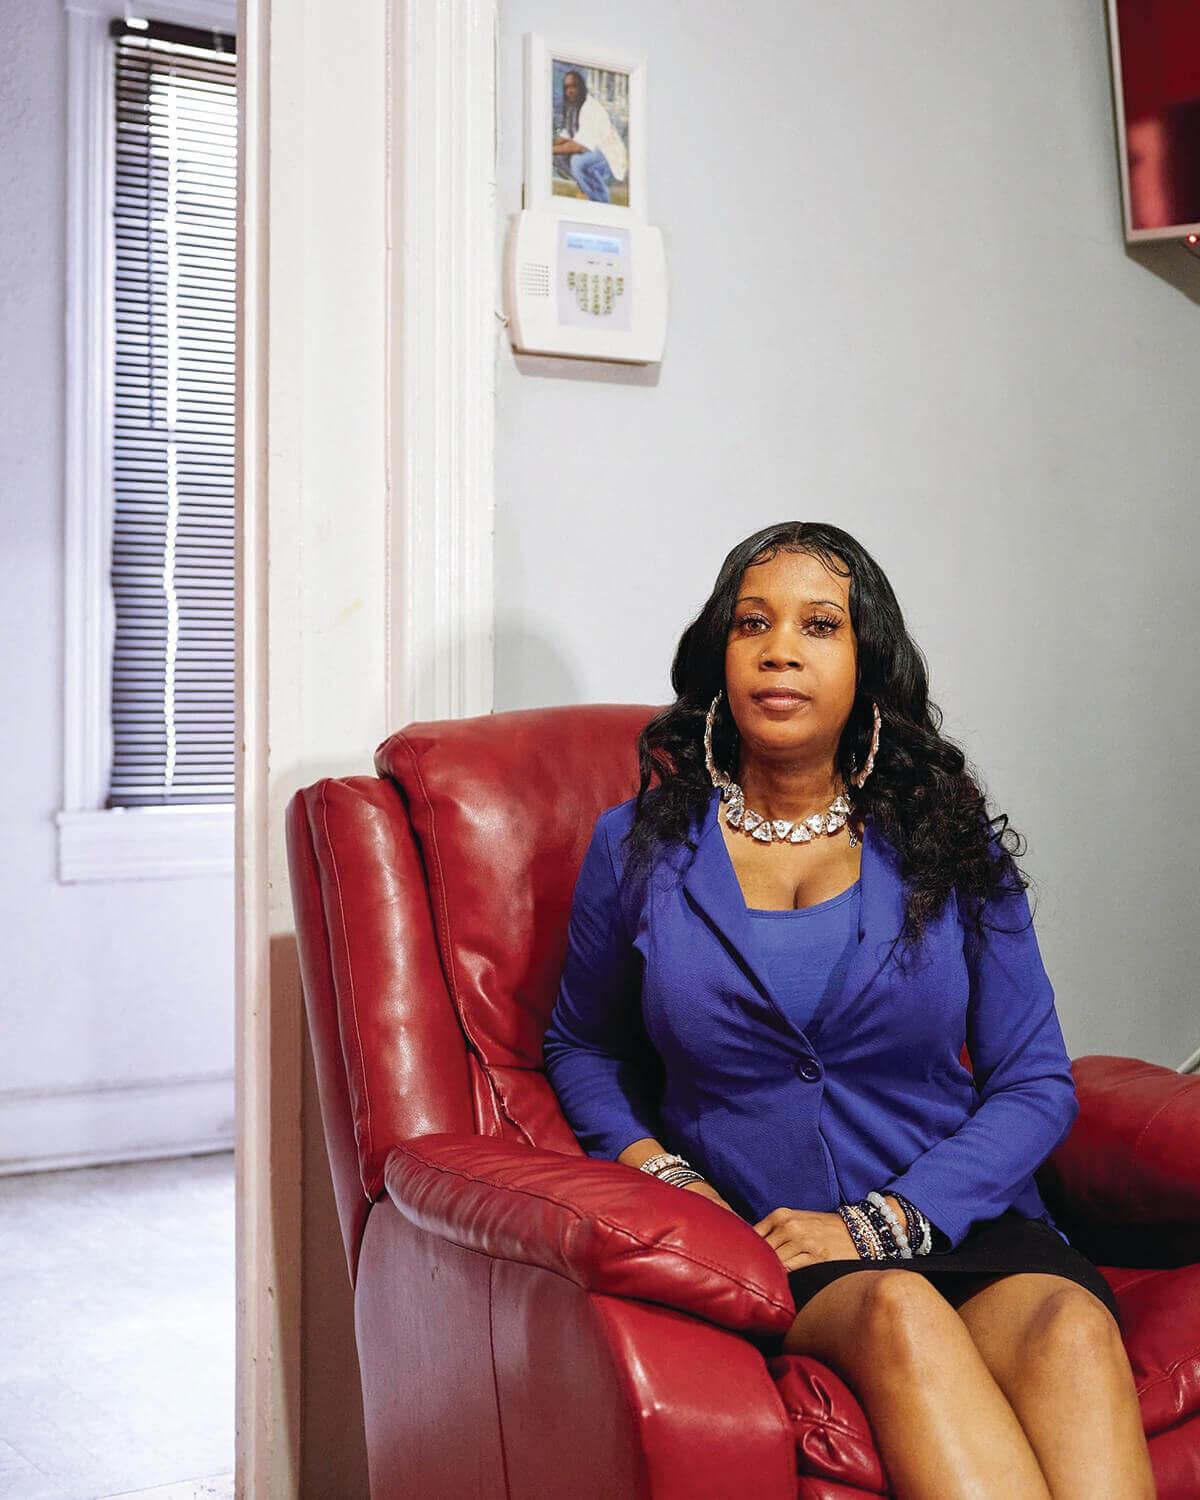 Tawanda Jones at her Home under a Photograph of Her brother.